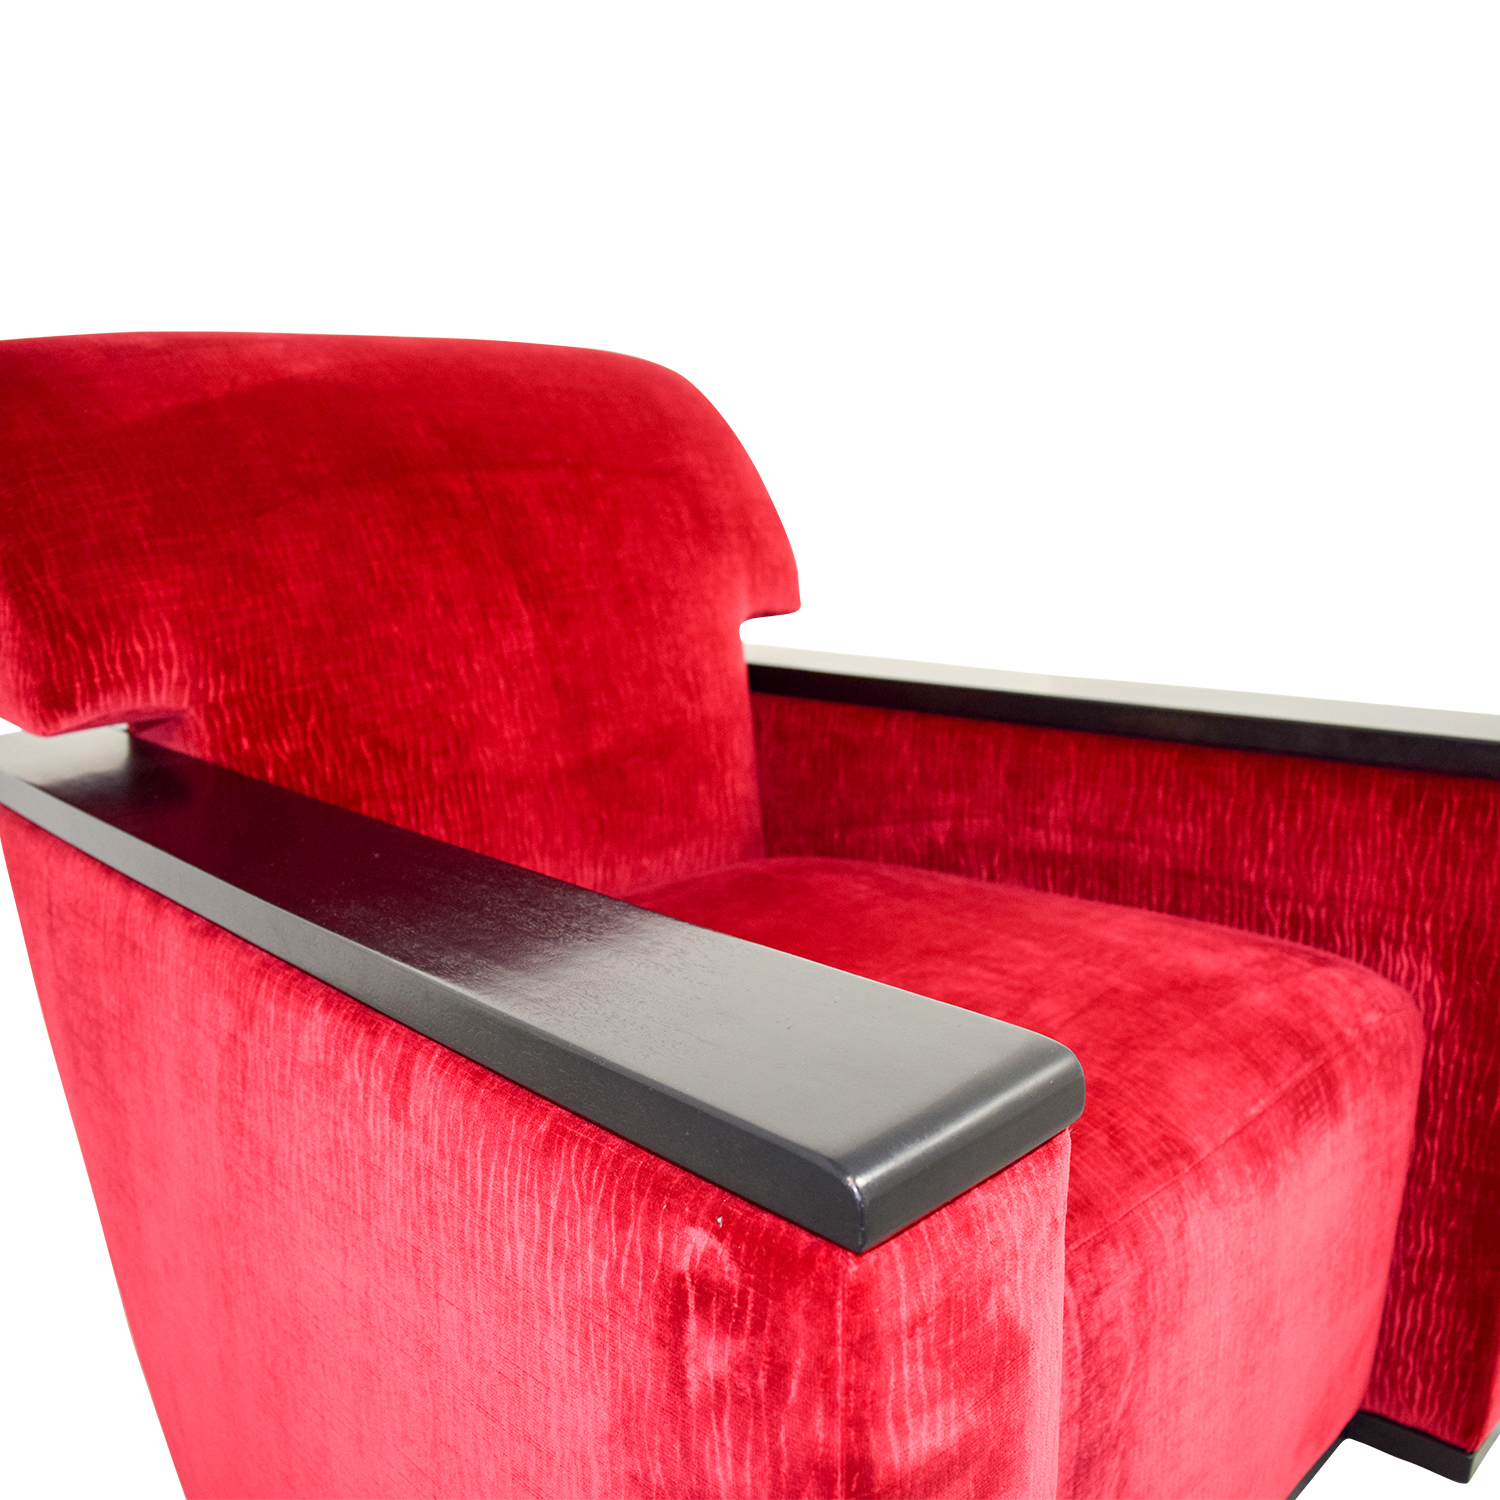 cheap hand chair banquet covers wholesale 90 off red arm with black accents chairs